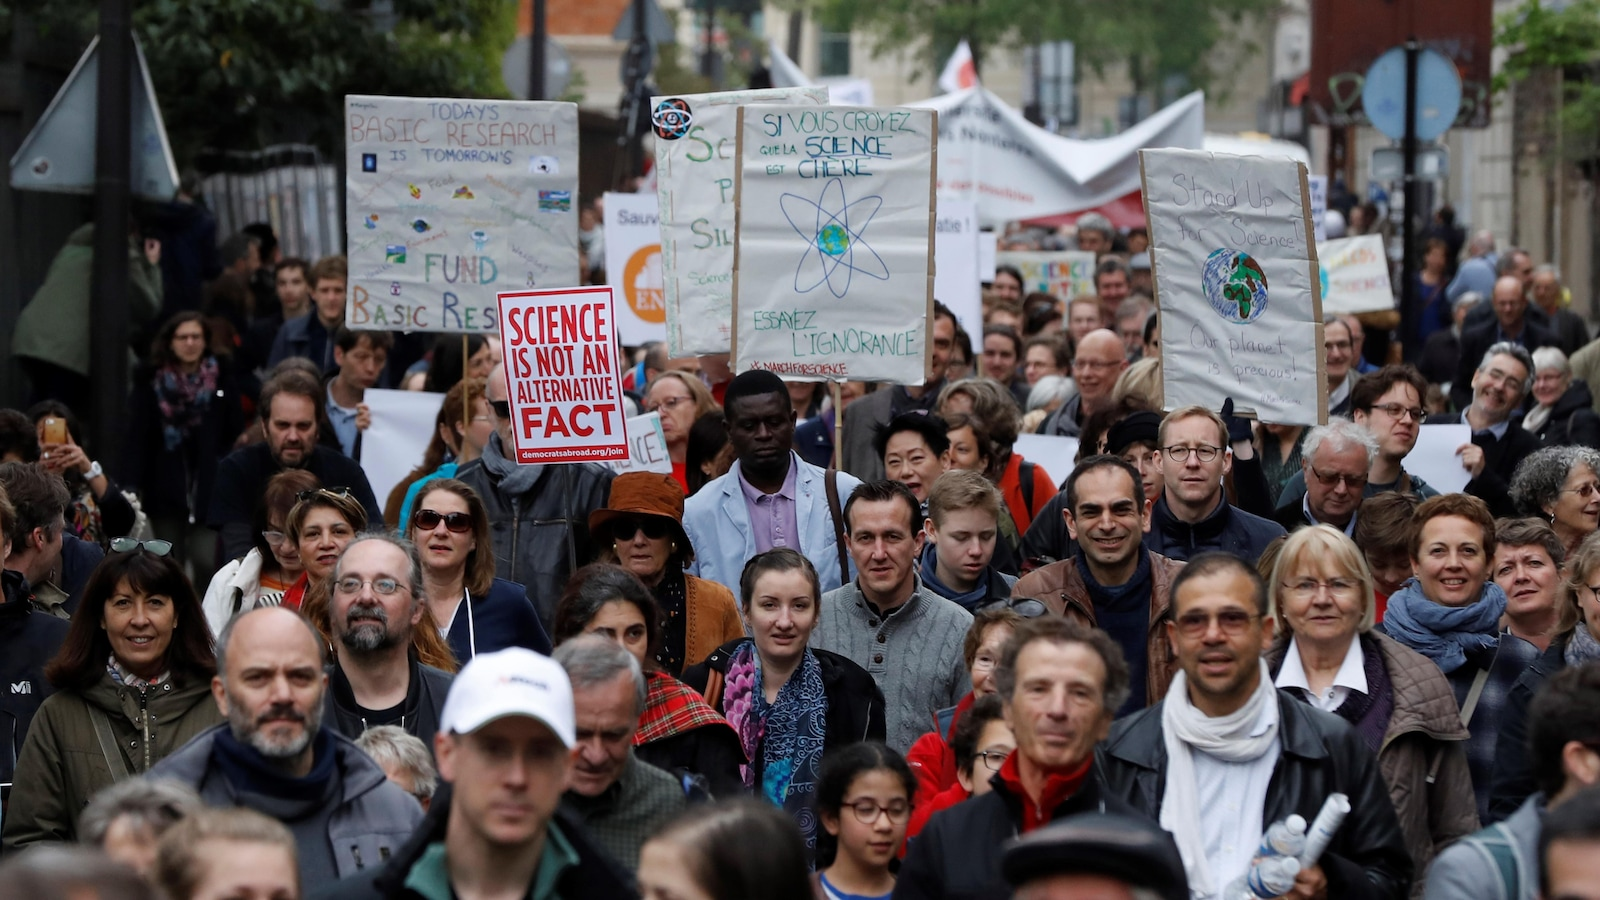 La Marche pour la science de Paris